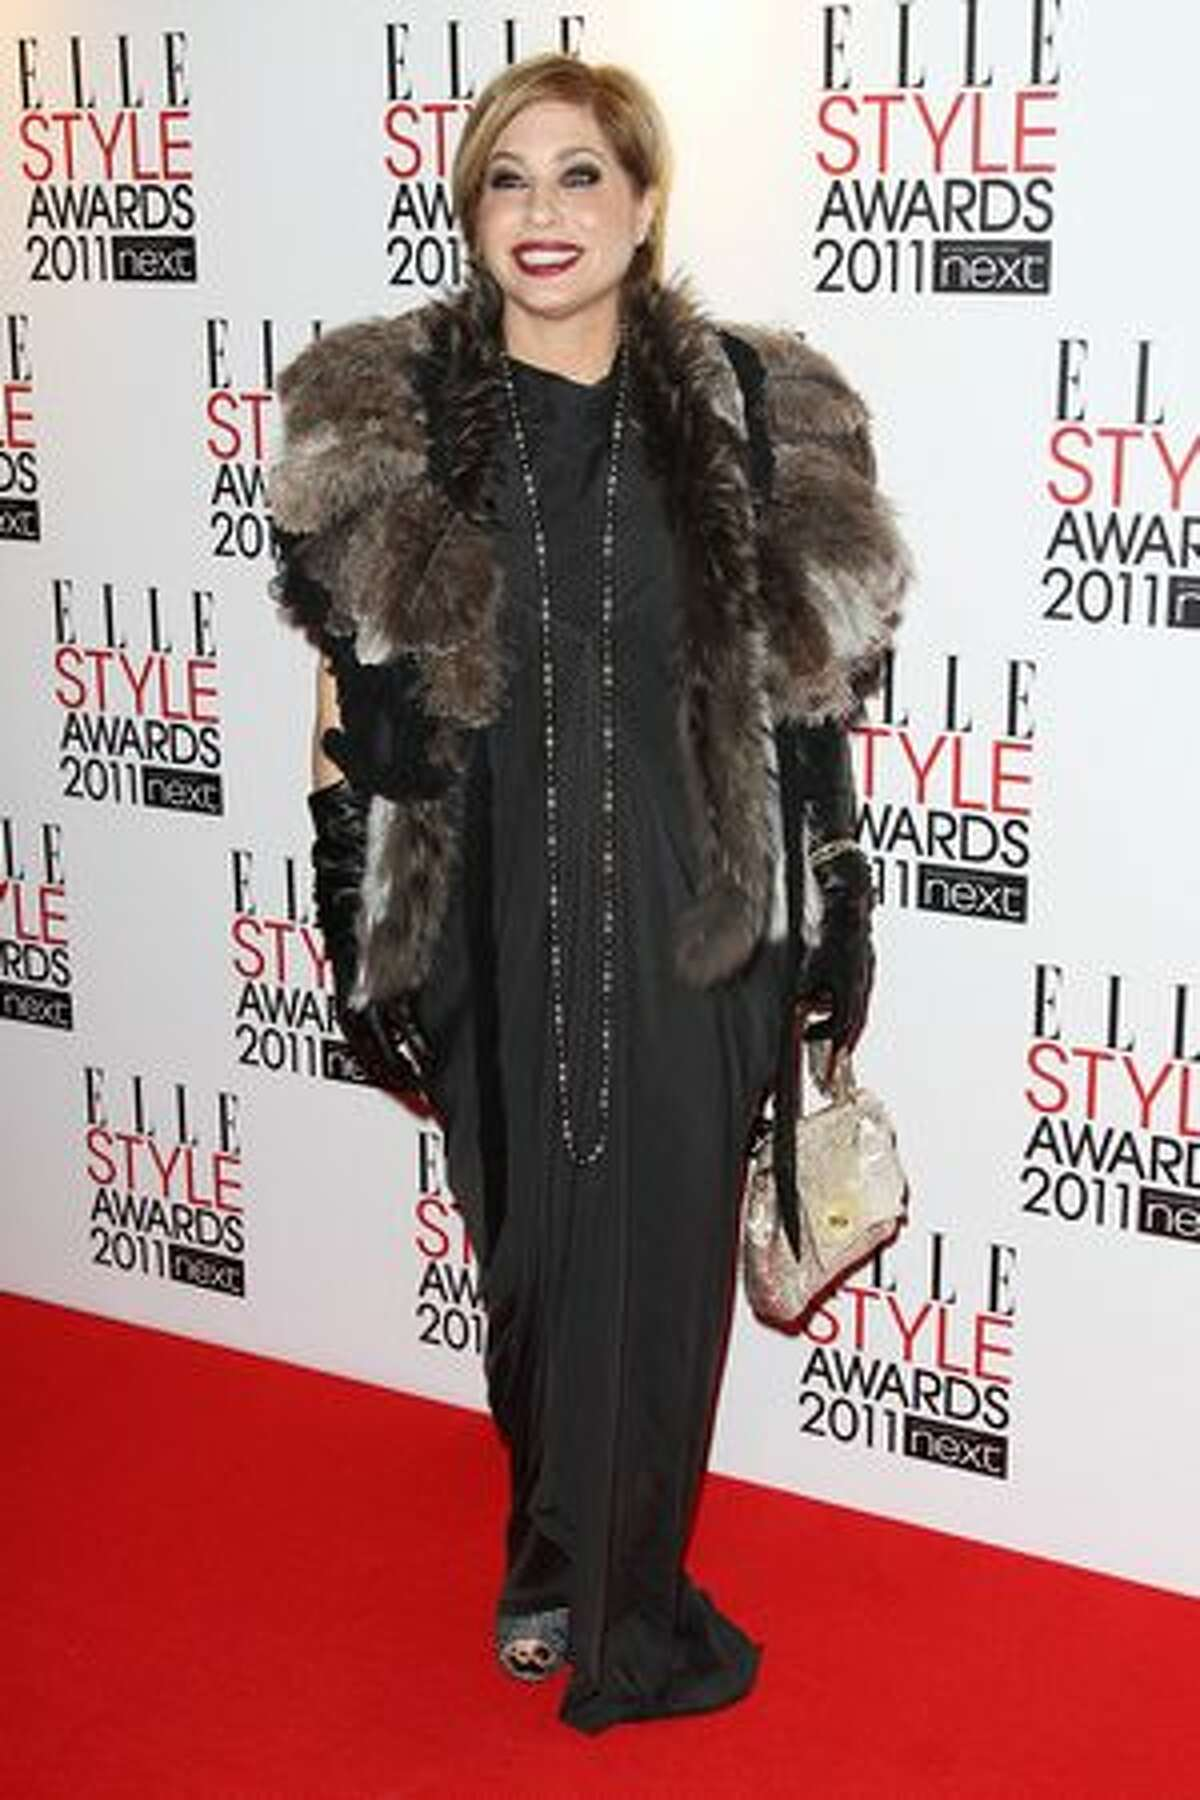 Brix Smith-Start arrives at the ELLE Style Awards 2011 held at The Grand Connaught Rooms in London, England.